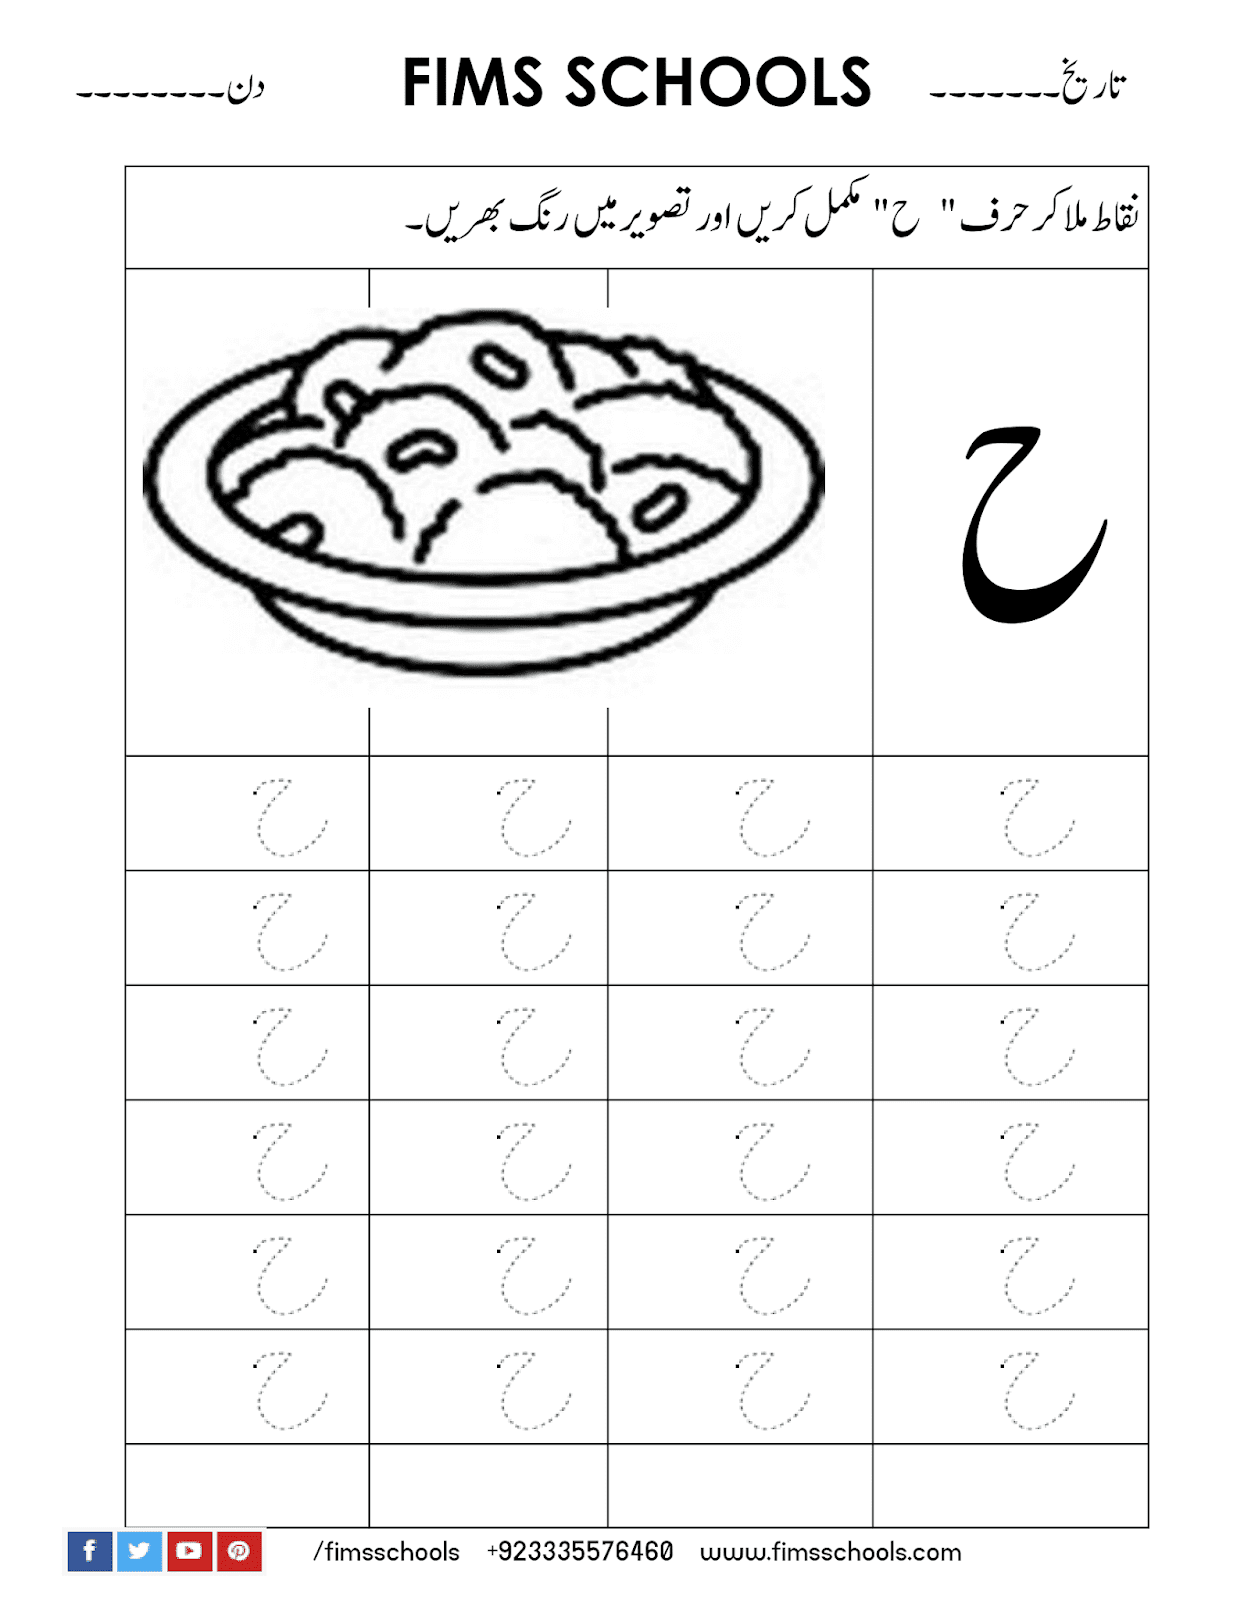 Urdu Alphabets Tracing Work Sheets | Tracing Worksheets